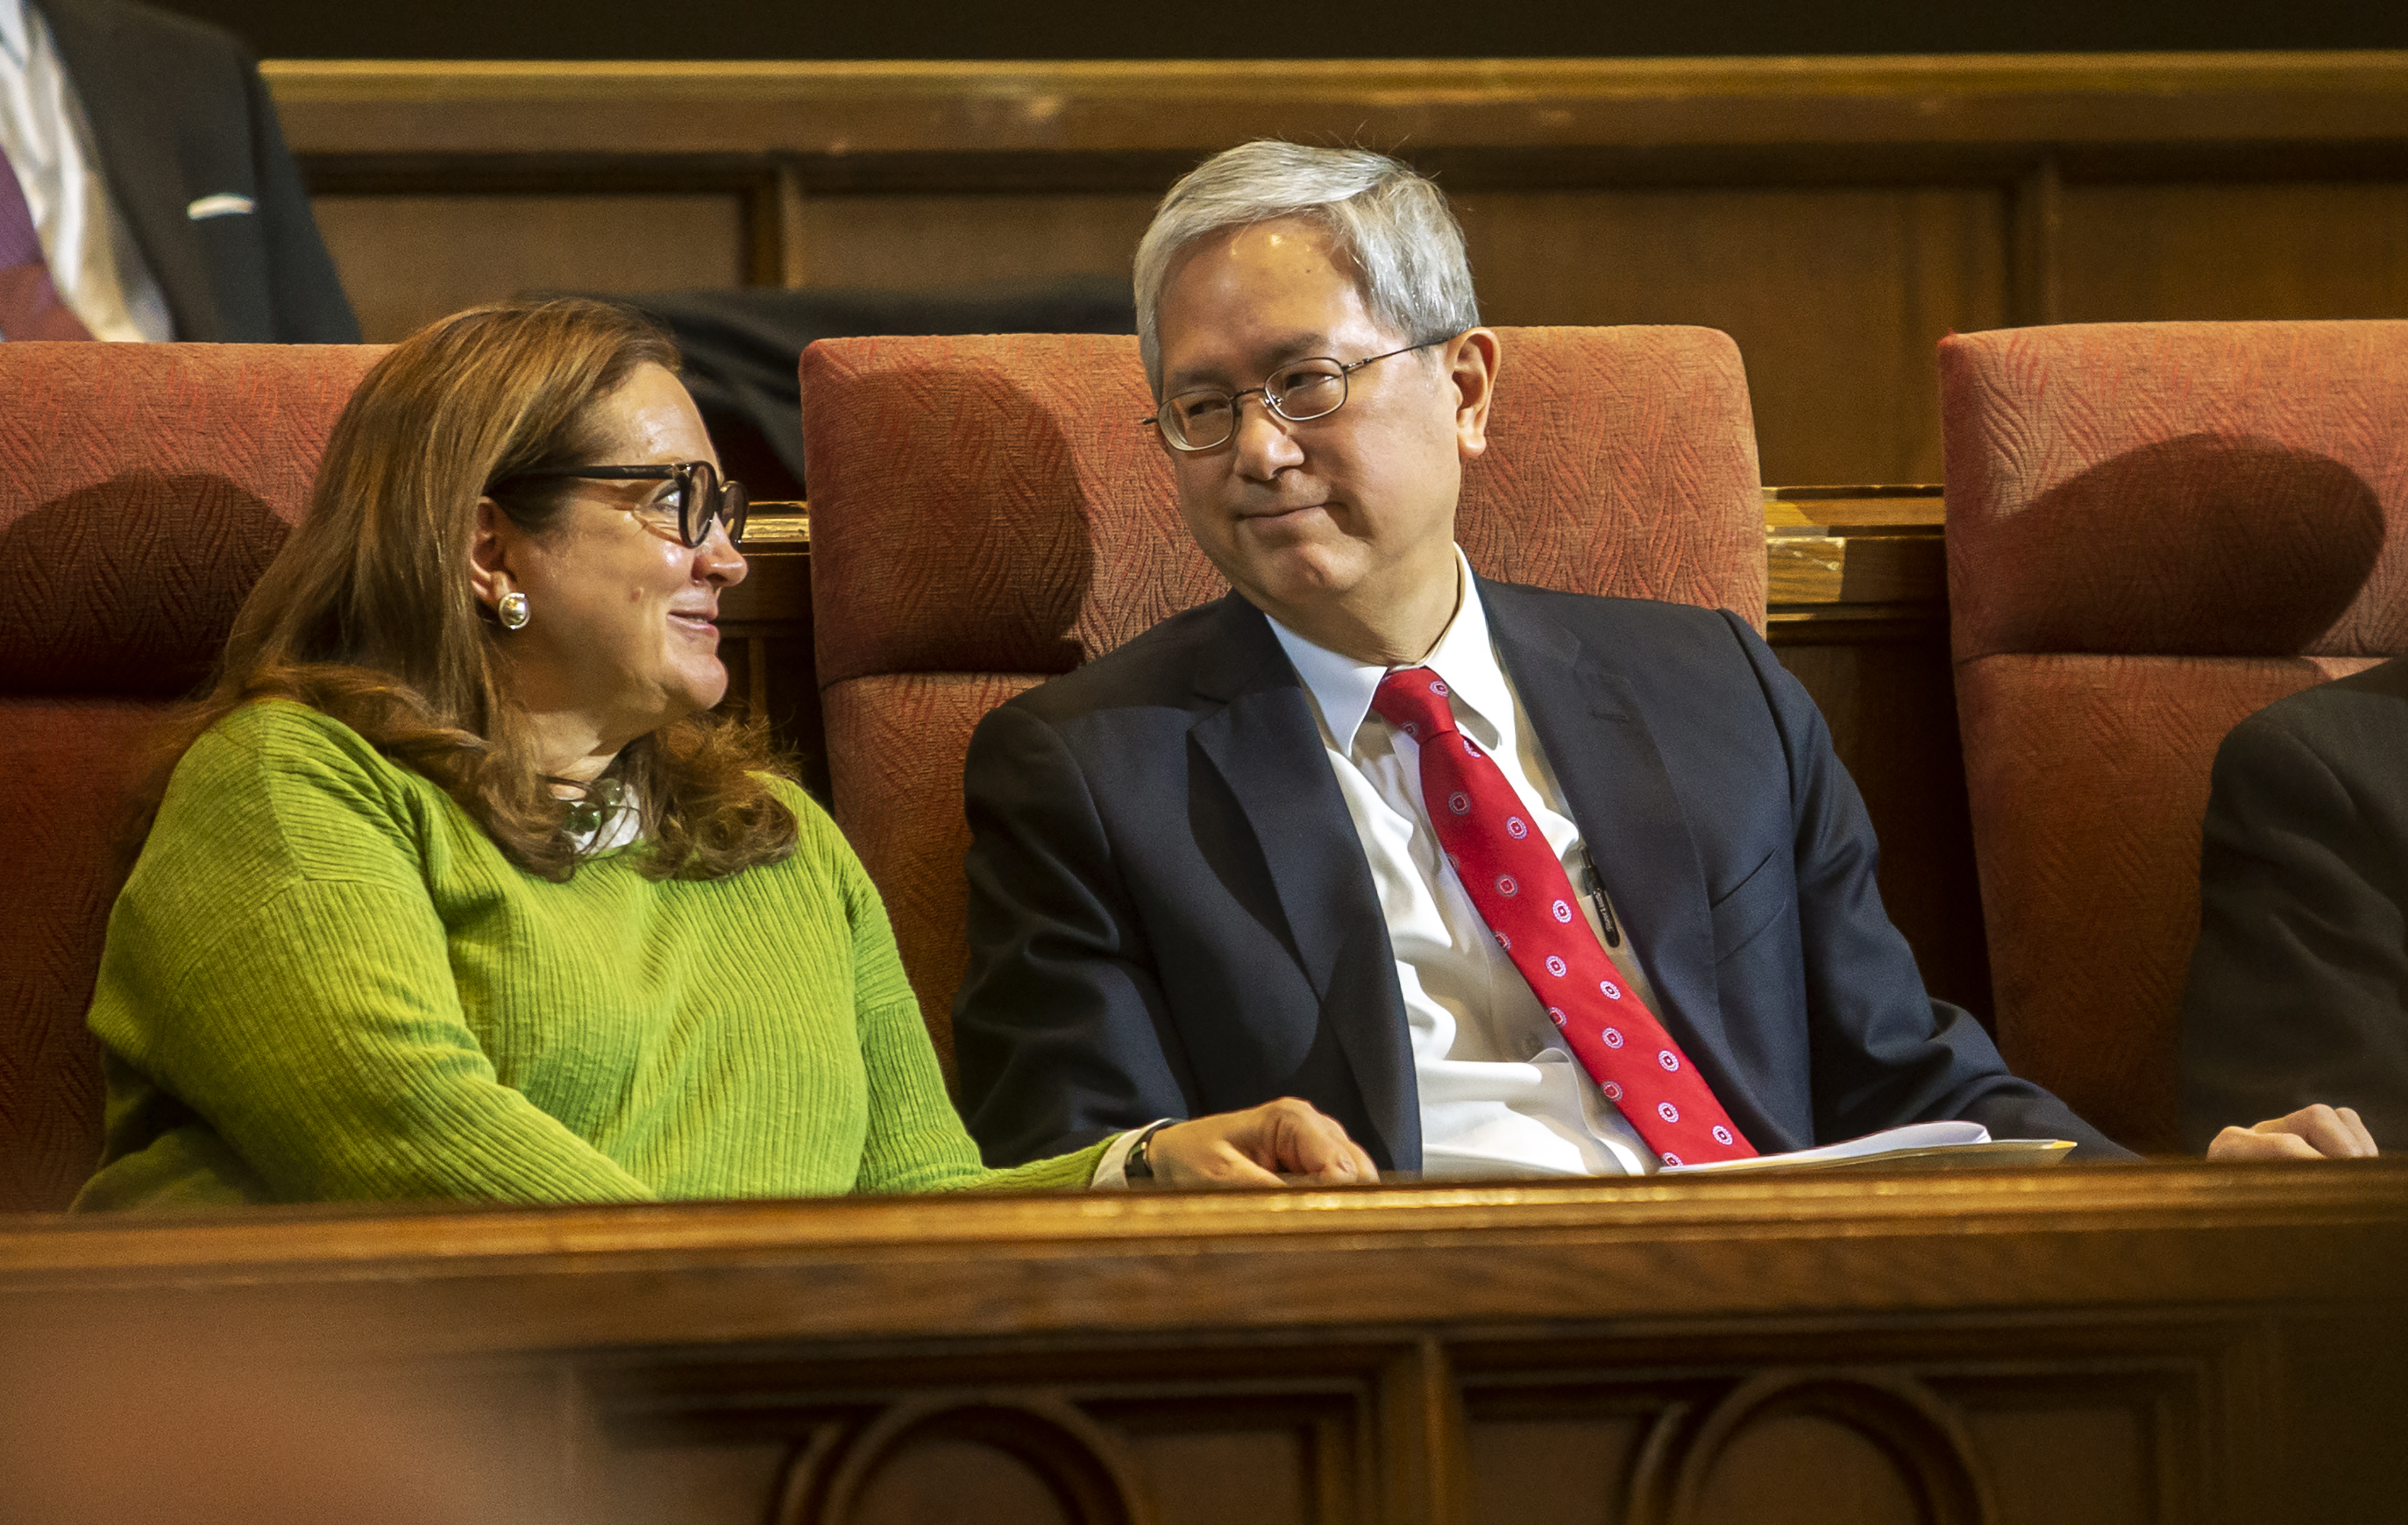 Elder Gerrit W. Gong of the Quorum of the Twelve Apostles of The Church of Jesus Christ of Latter-day Saints and his wife Susan share a smile prior to his speaking to a group of LDS Business College Students and staff in the Assembly Hall on Temple Square in Salt Lake City on Tuesday, Feb. 26, 2019.